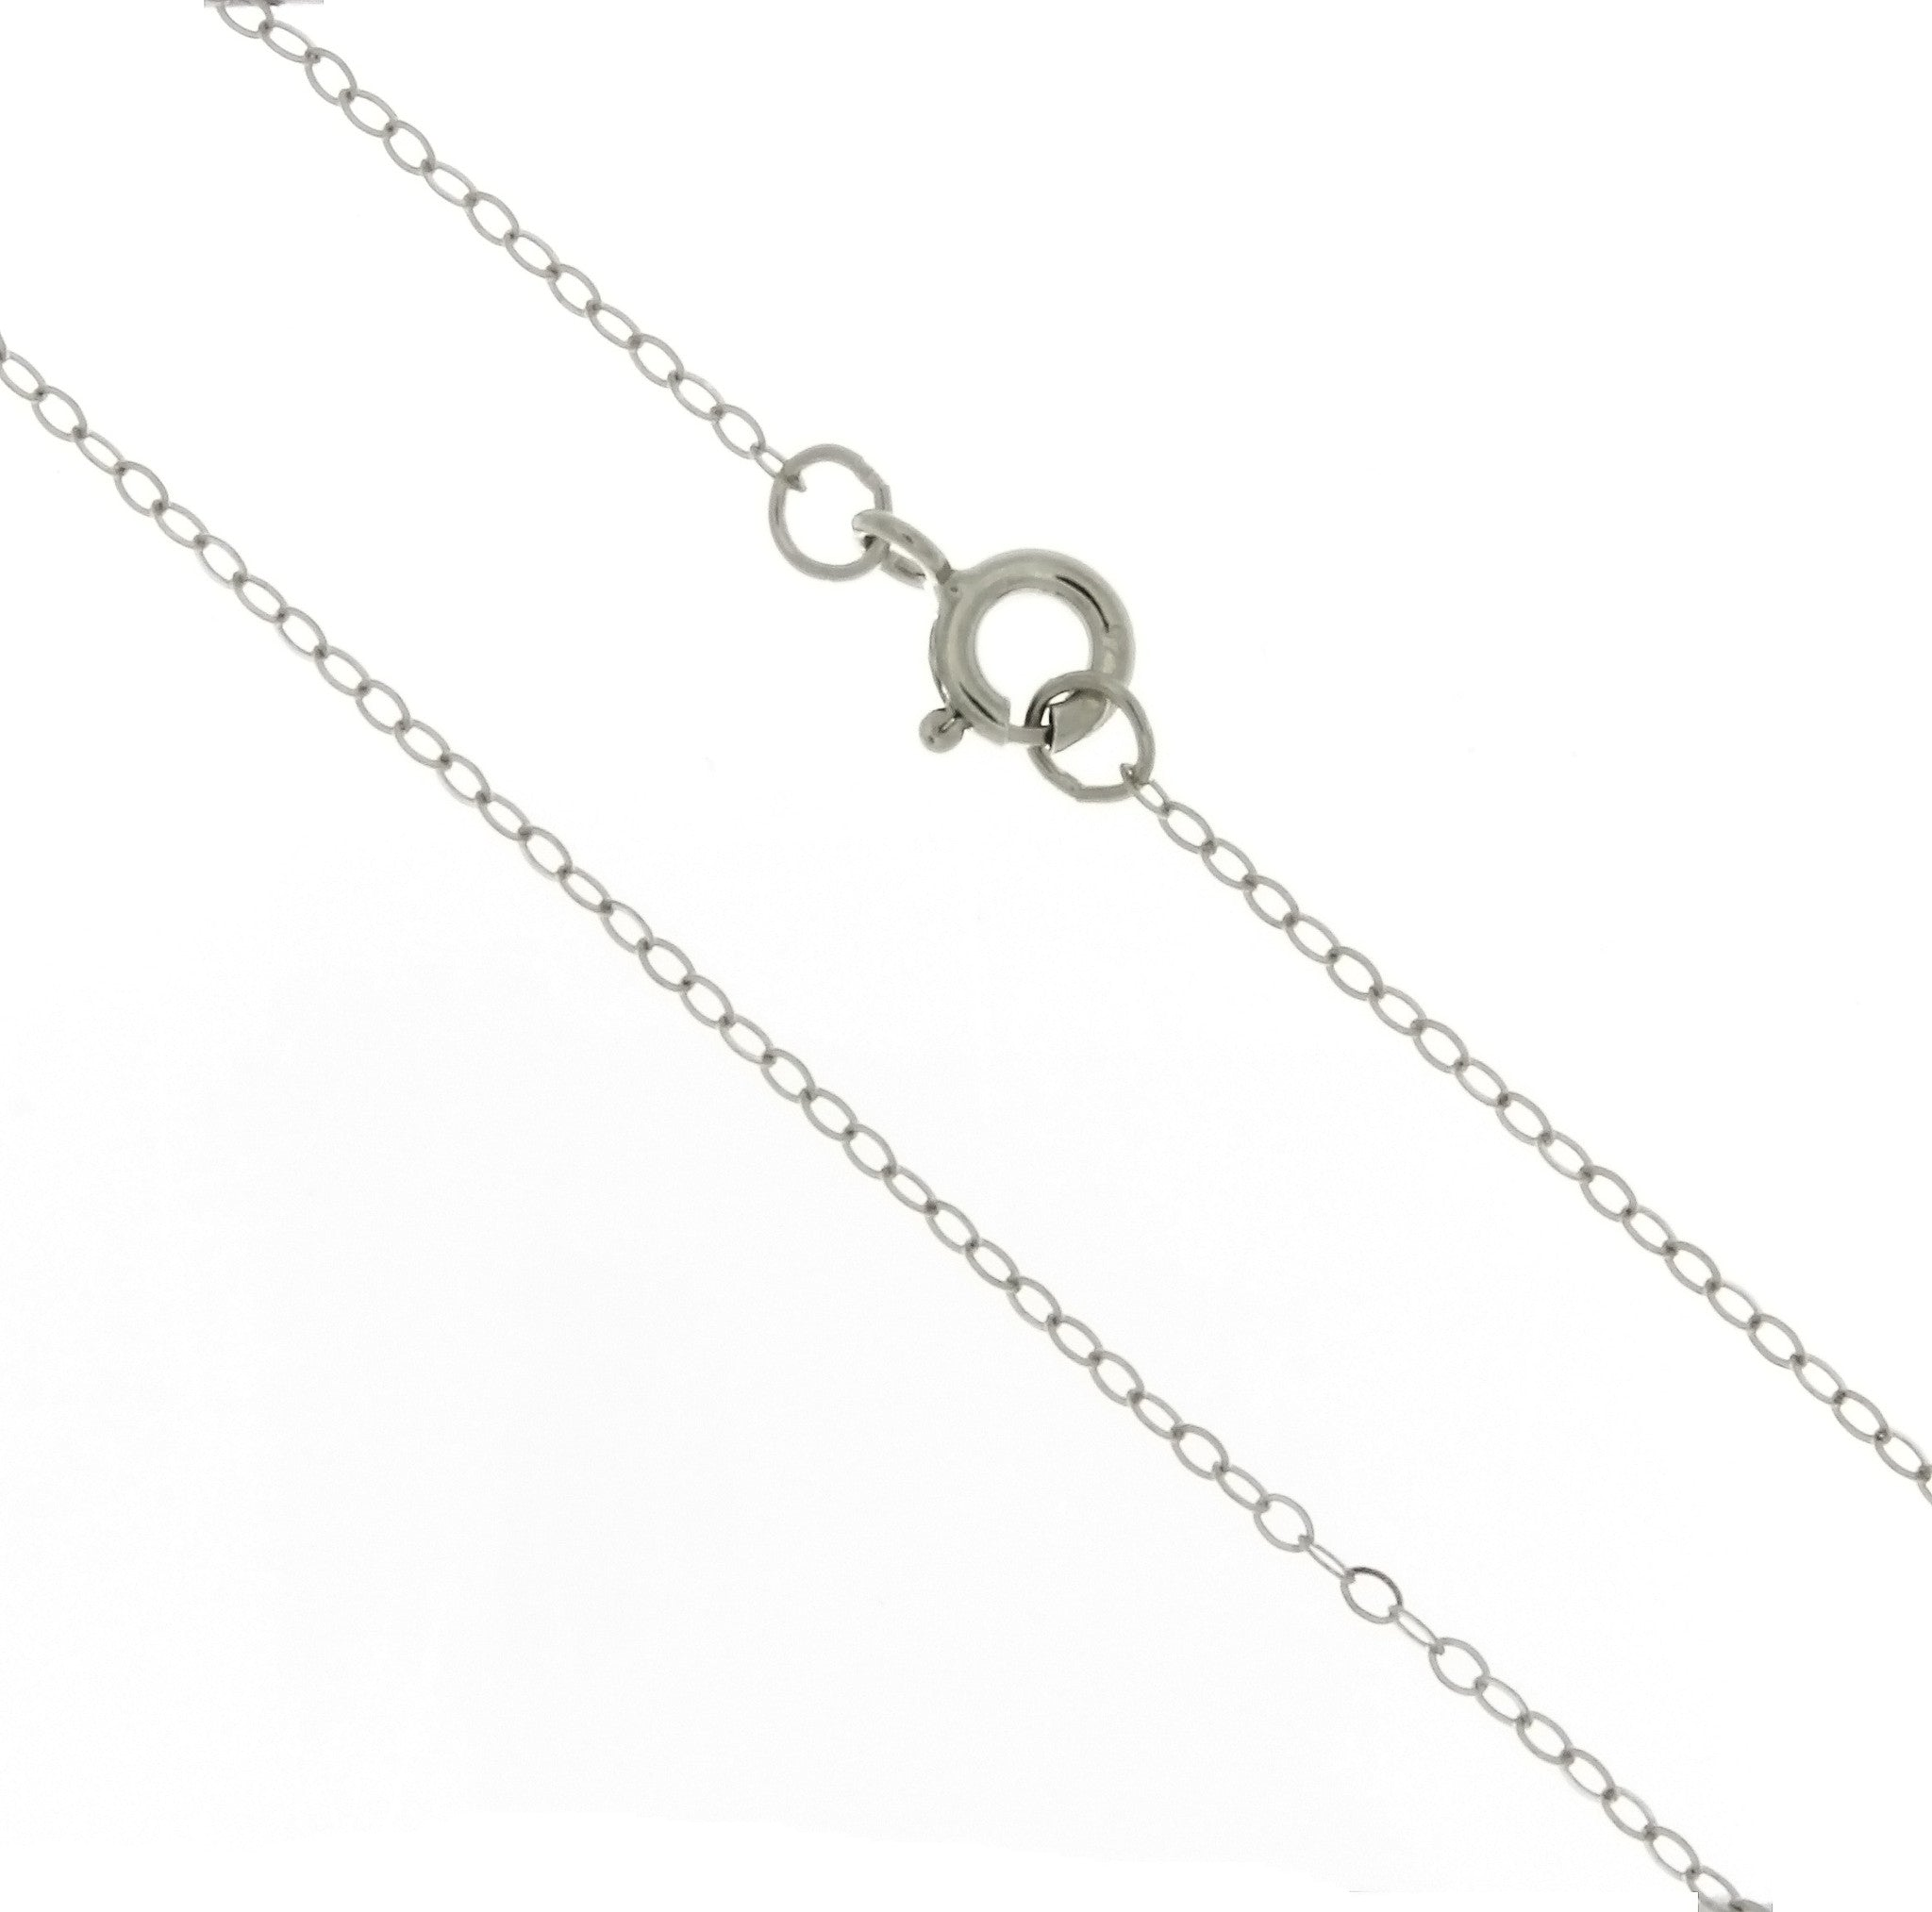 CHAIN NECKLACE CABLE SS 1 MM X 18 IN